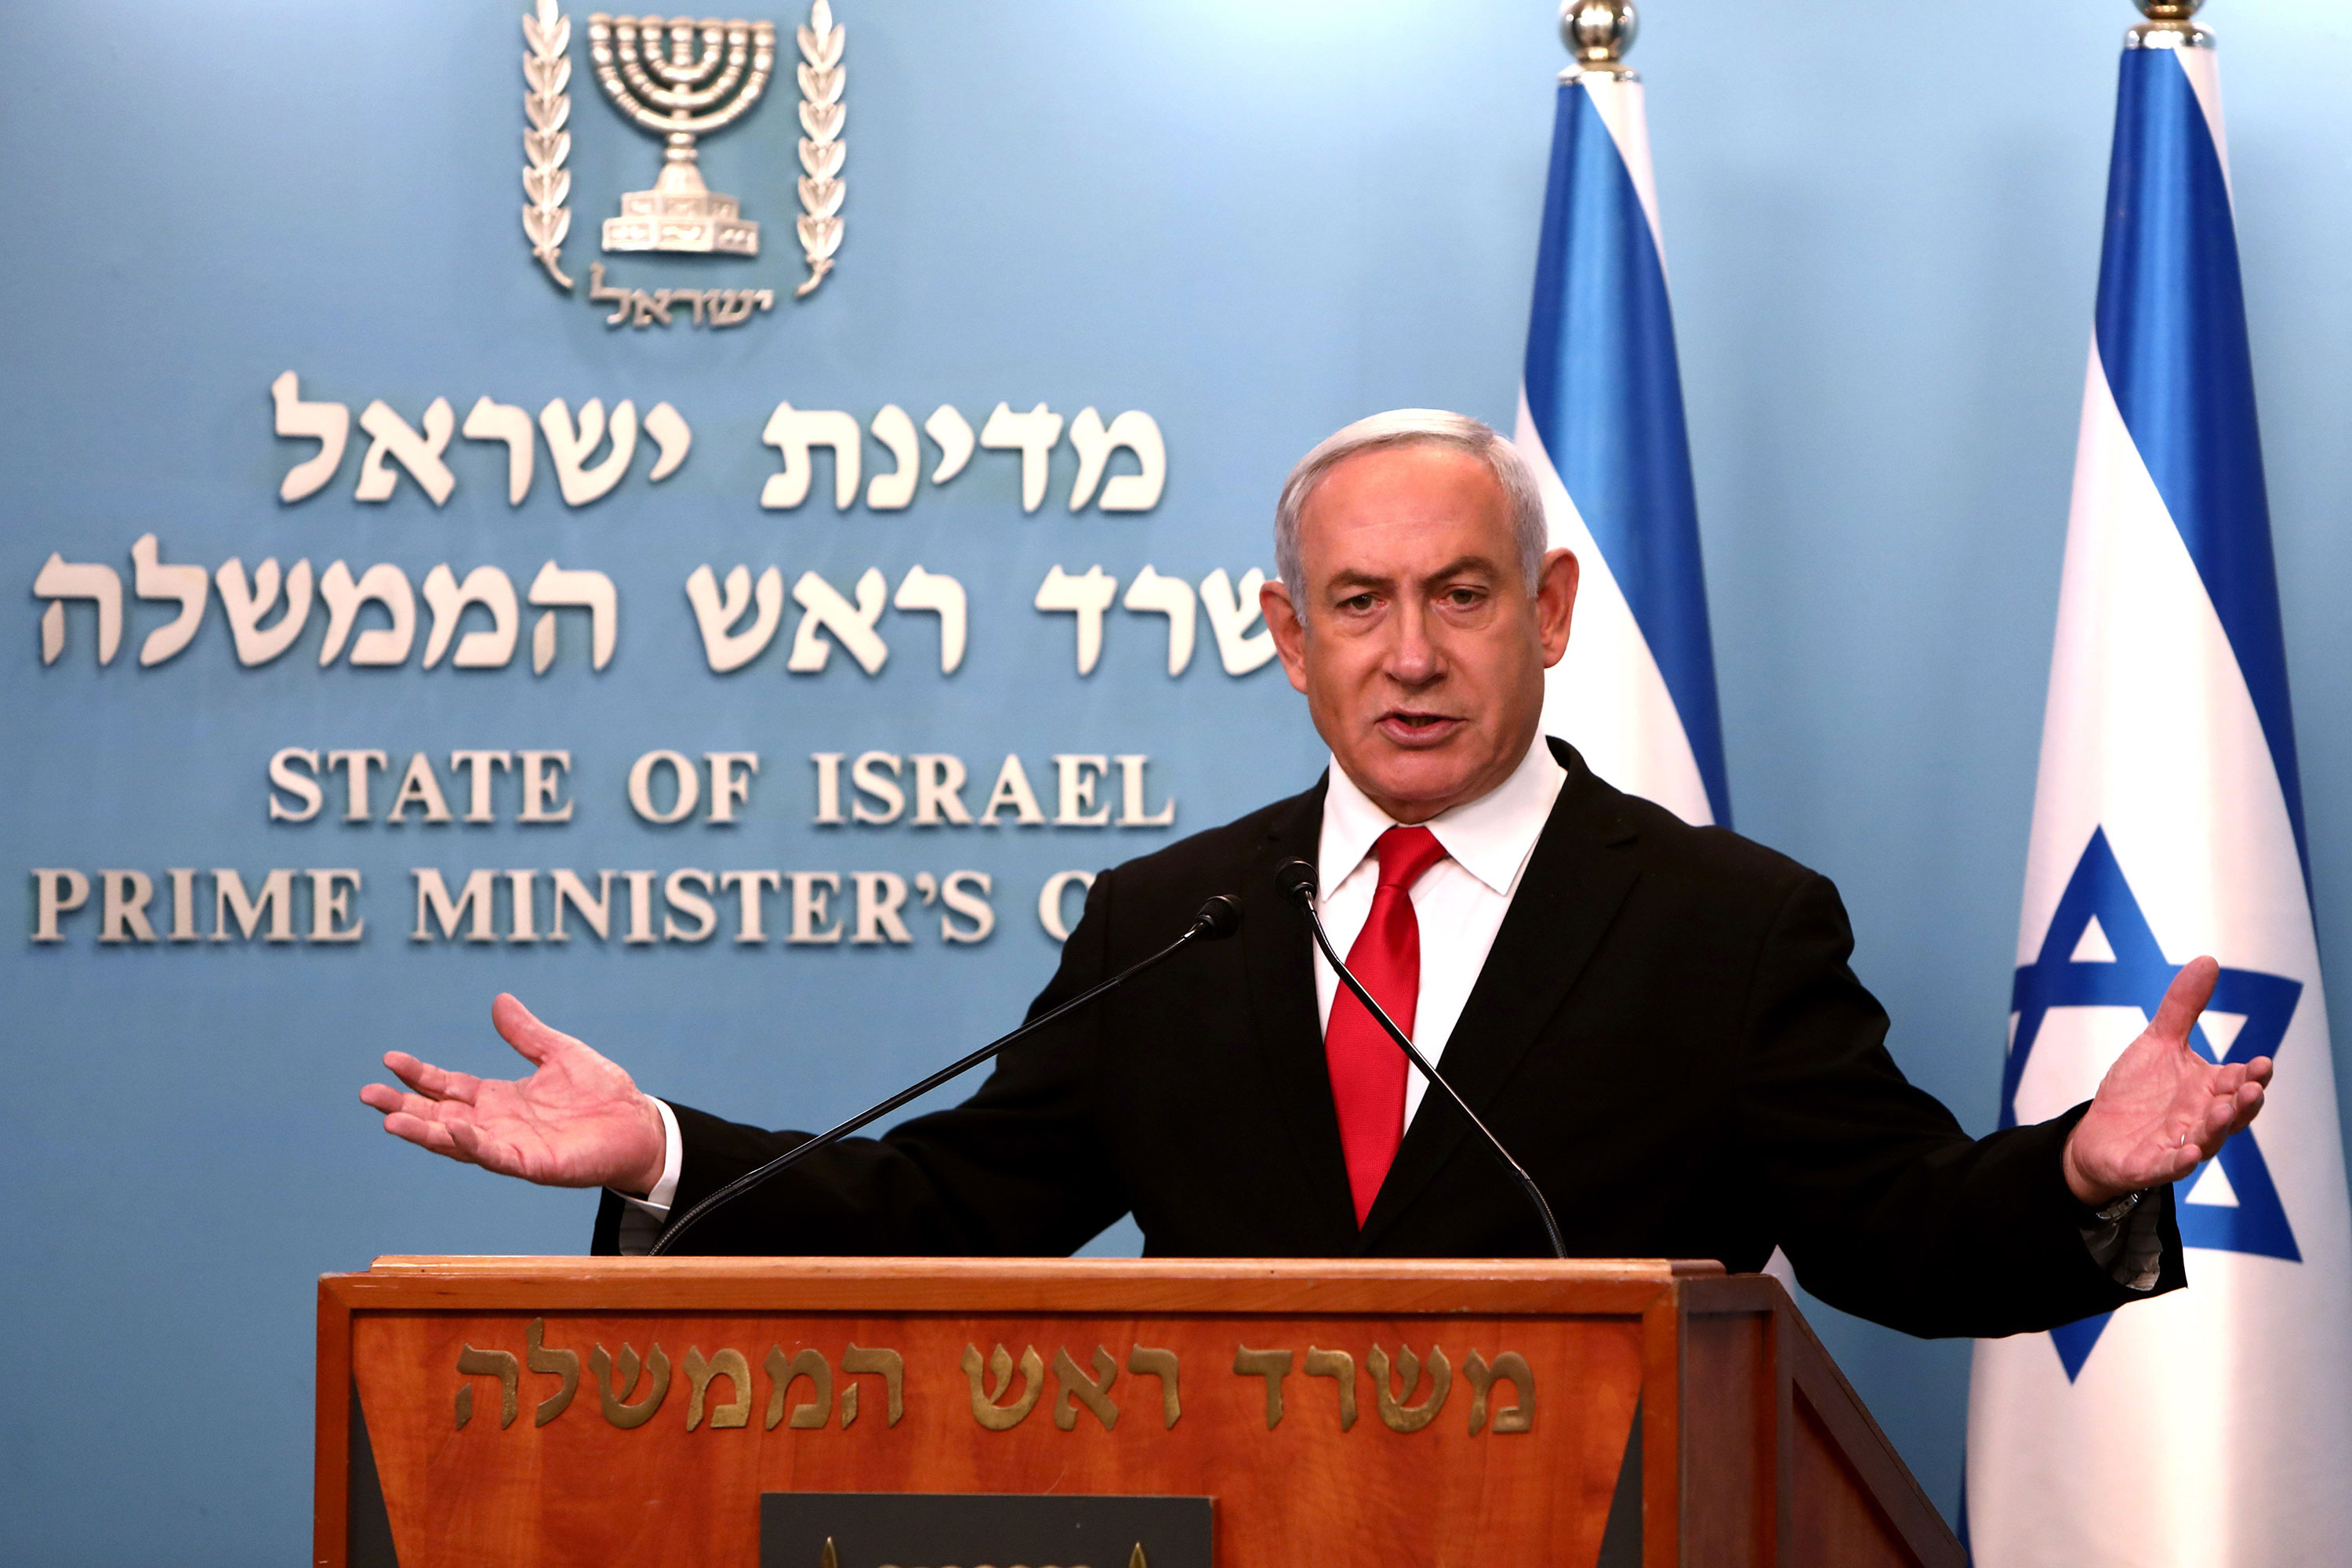 Israeli Prime Minister Benjamin Netanyahu delivers a speech at his Jerusalem office on March 14, regarding the new measures that will be taken to fight coronavirus in Israel.